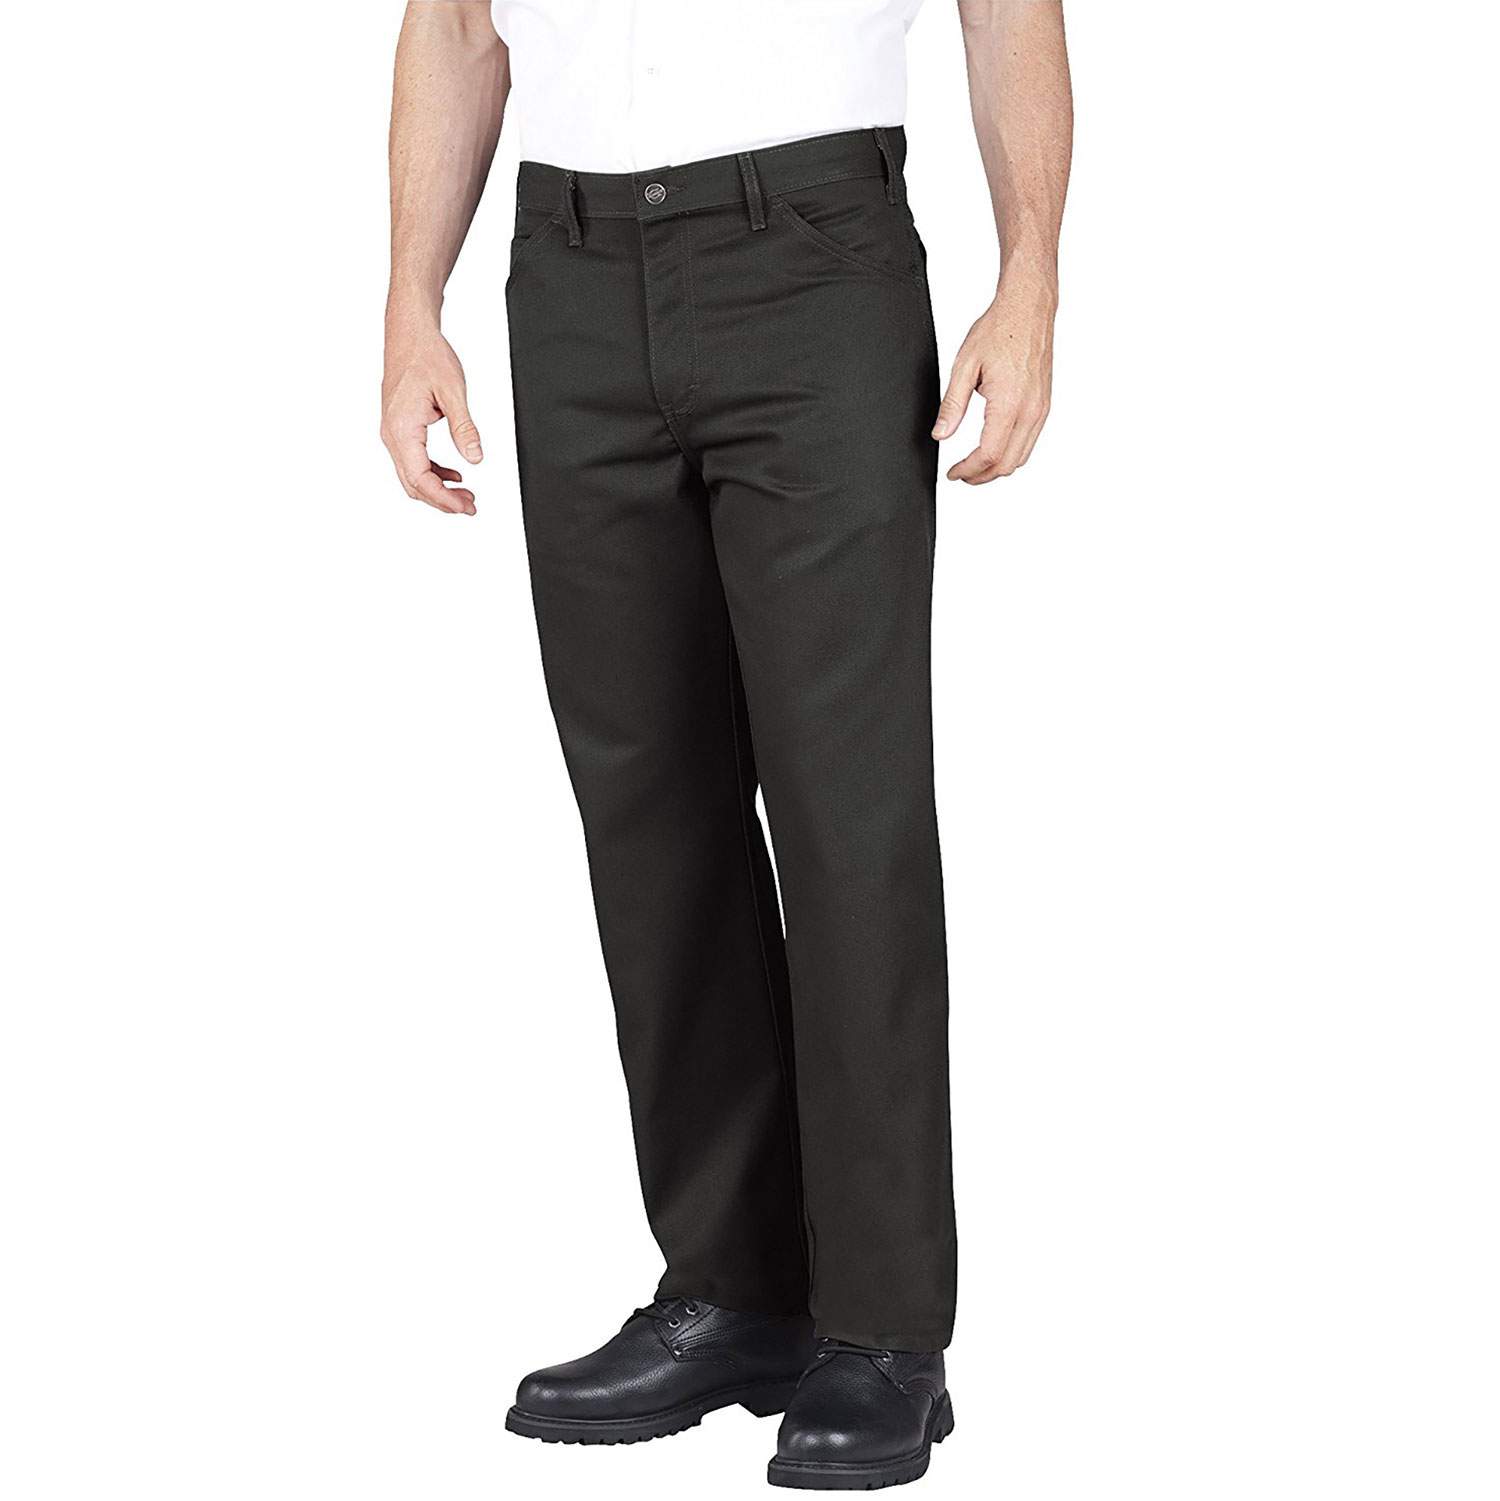 Dickies Men's Regular Fit Five Pocket Stay Dark Pant